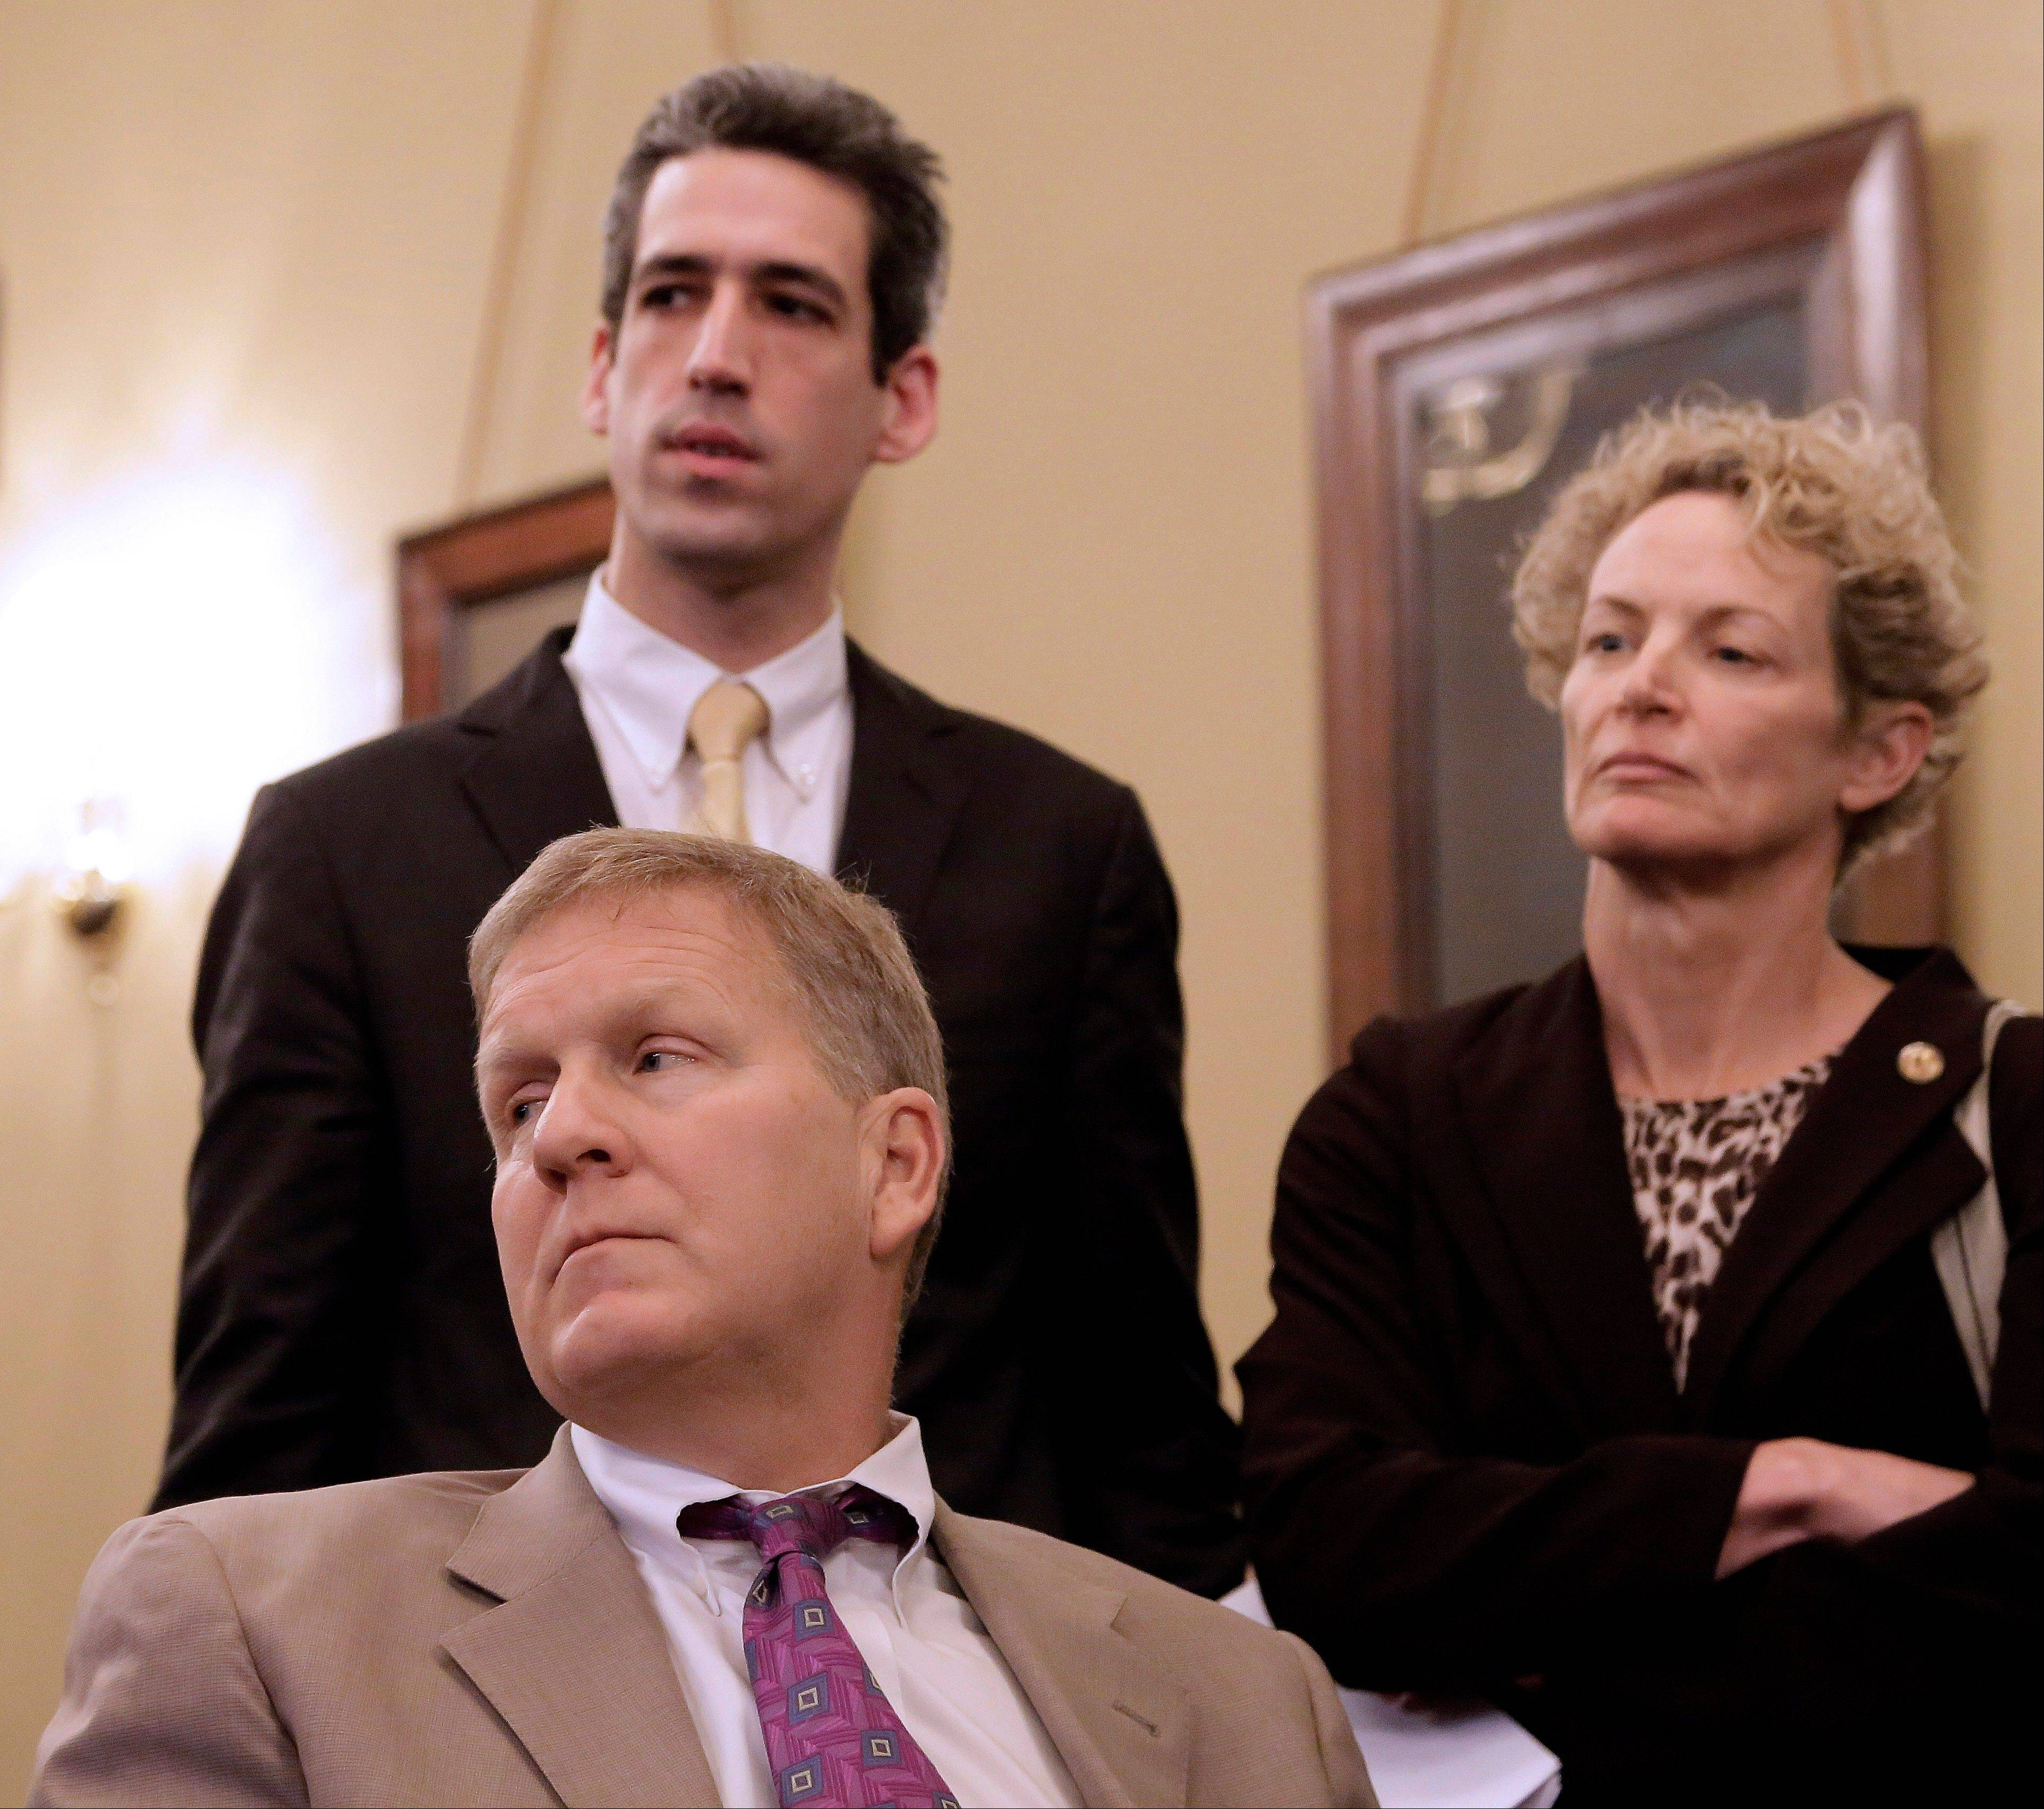 State Rep. Daniel Biss of Evanston, top left, House Republican Leader Tom Cross of Oswego, bottom, and state Rep. Elaine Nekritz of Northbrook, listen to testimony during a House committee hearing at the Capitol Monday.